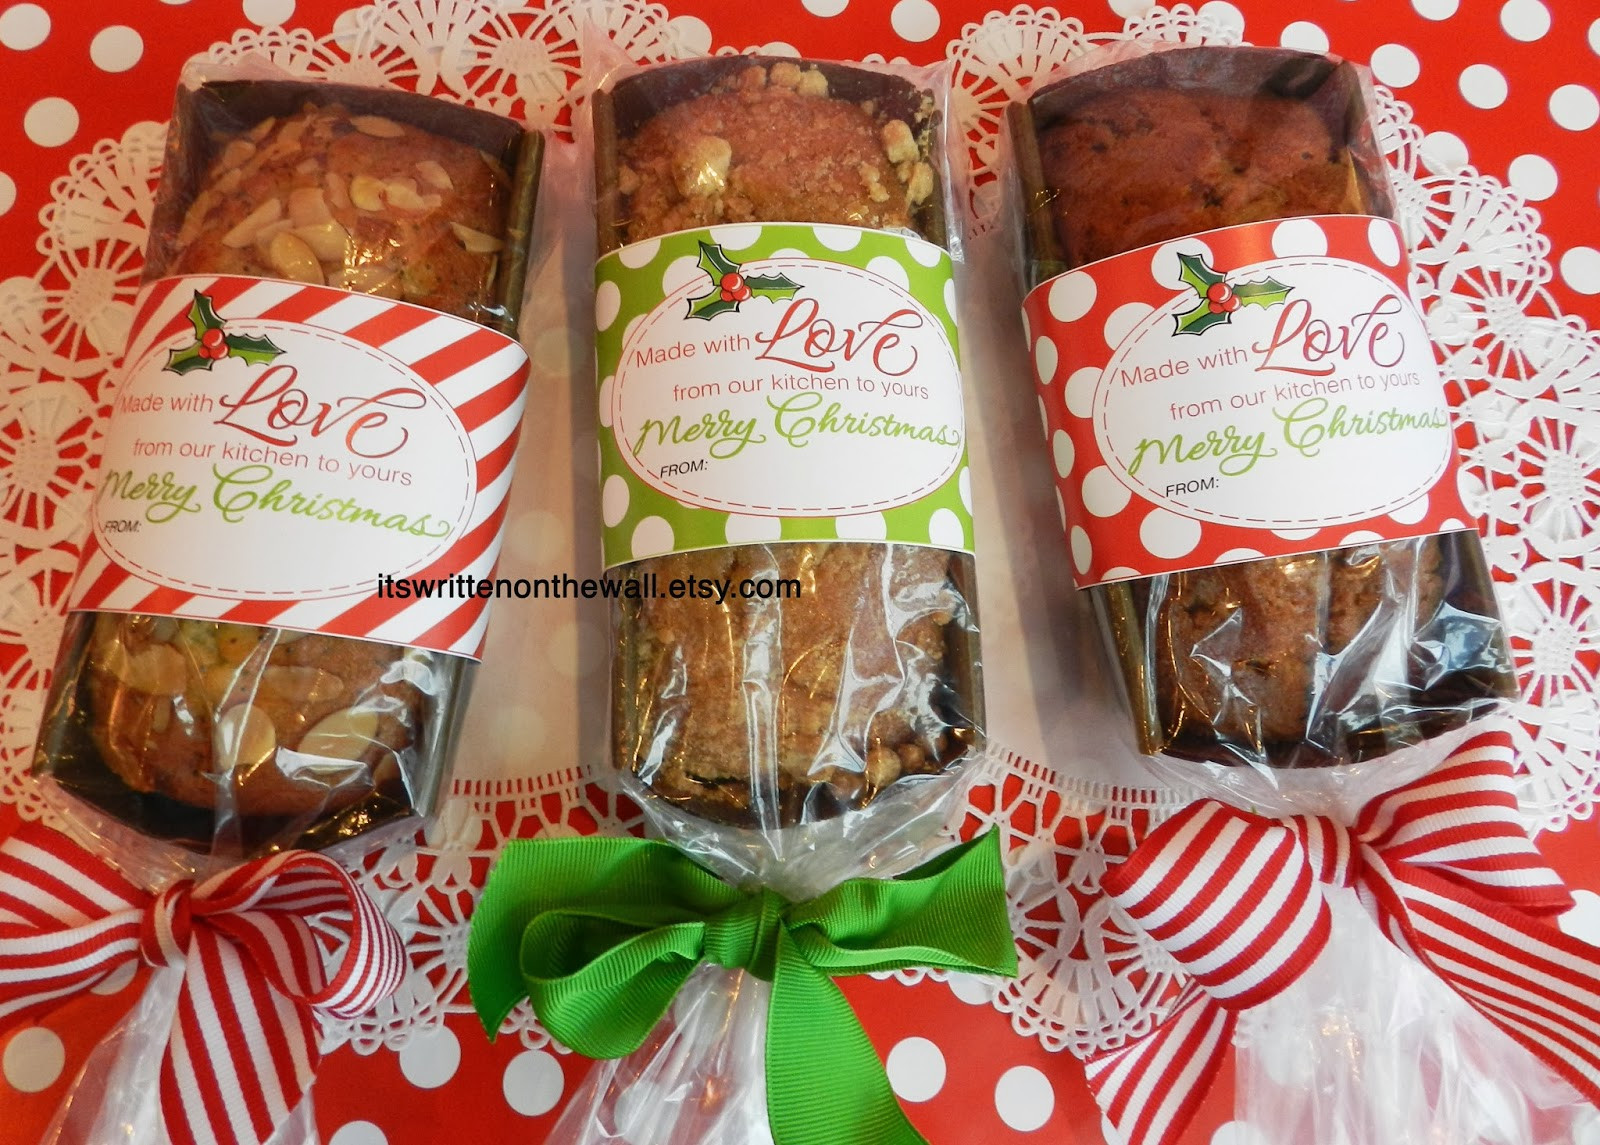 Food Gifts For Christmas  It s Written on the Wall 286 Neighbor Christmas Gift